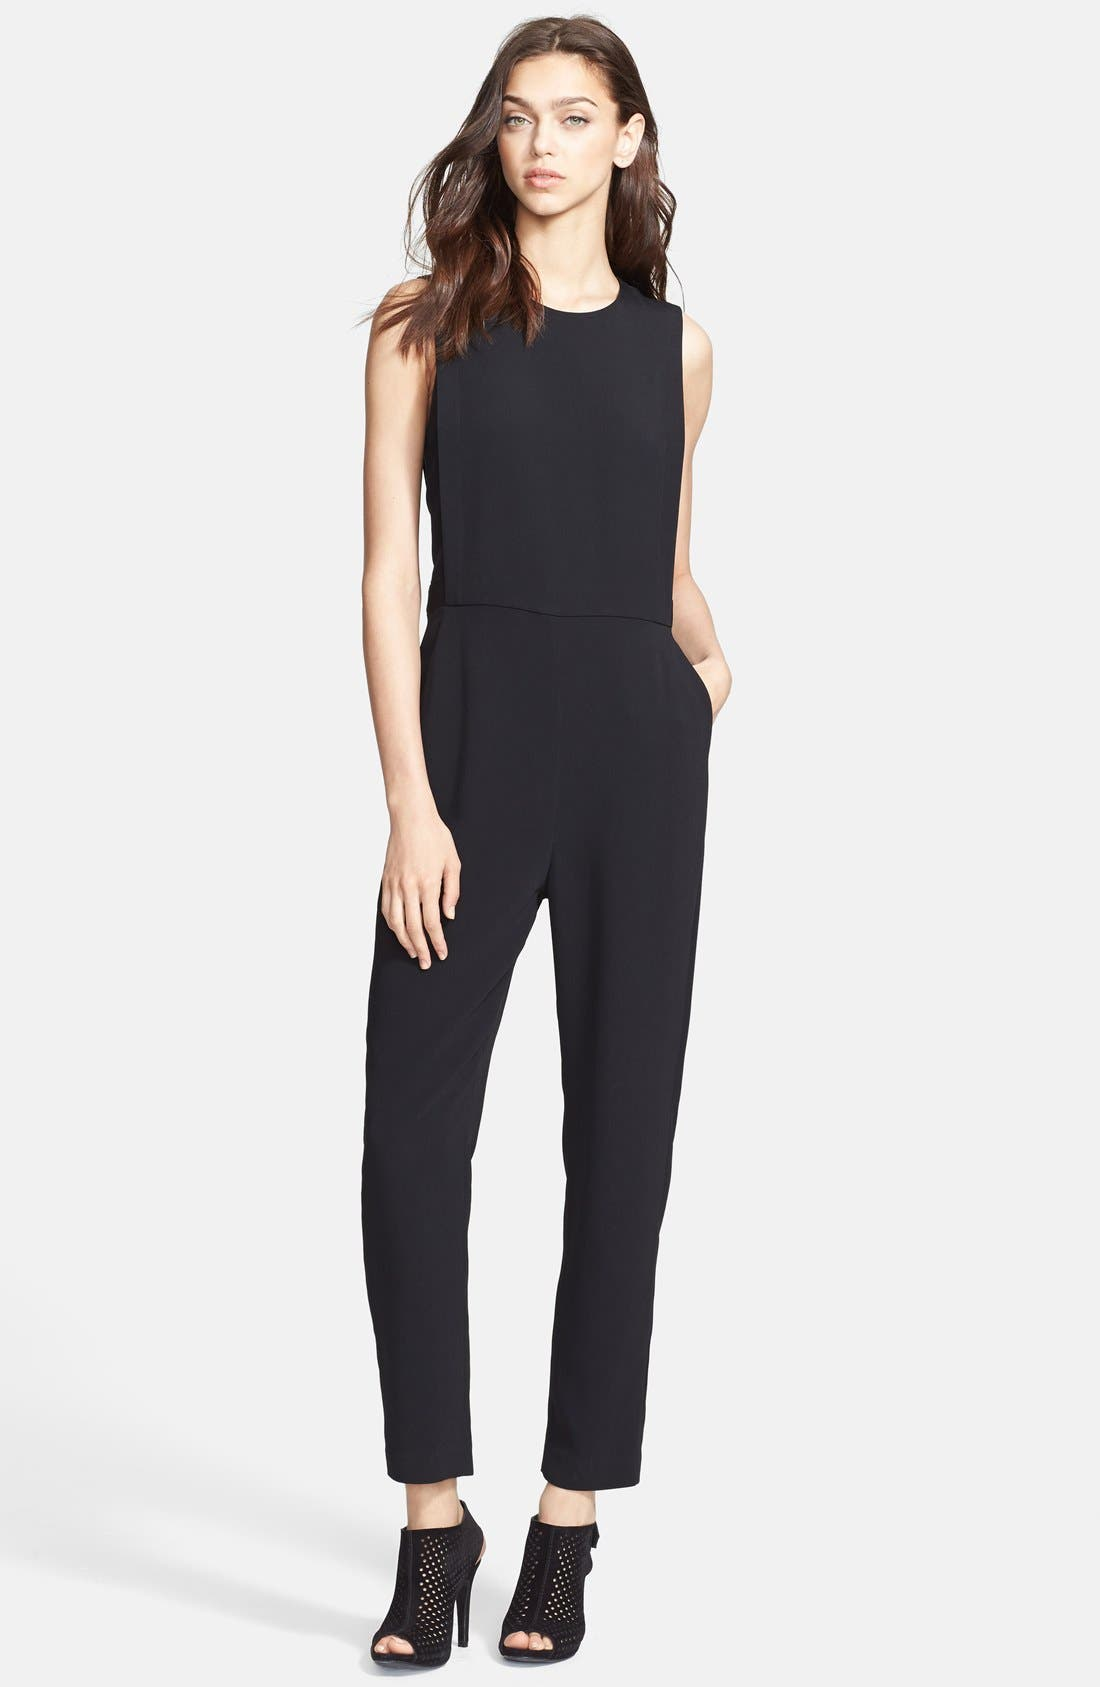 Main Image - Theory 'Remaline' Stretch Crepe Jumpsuit